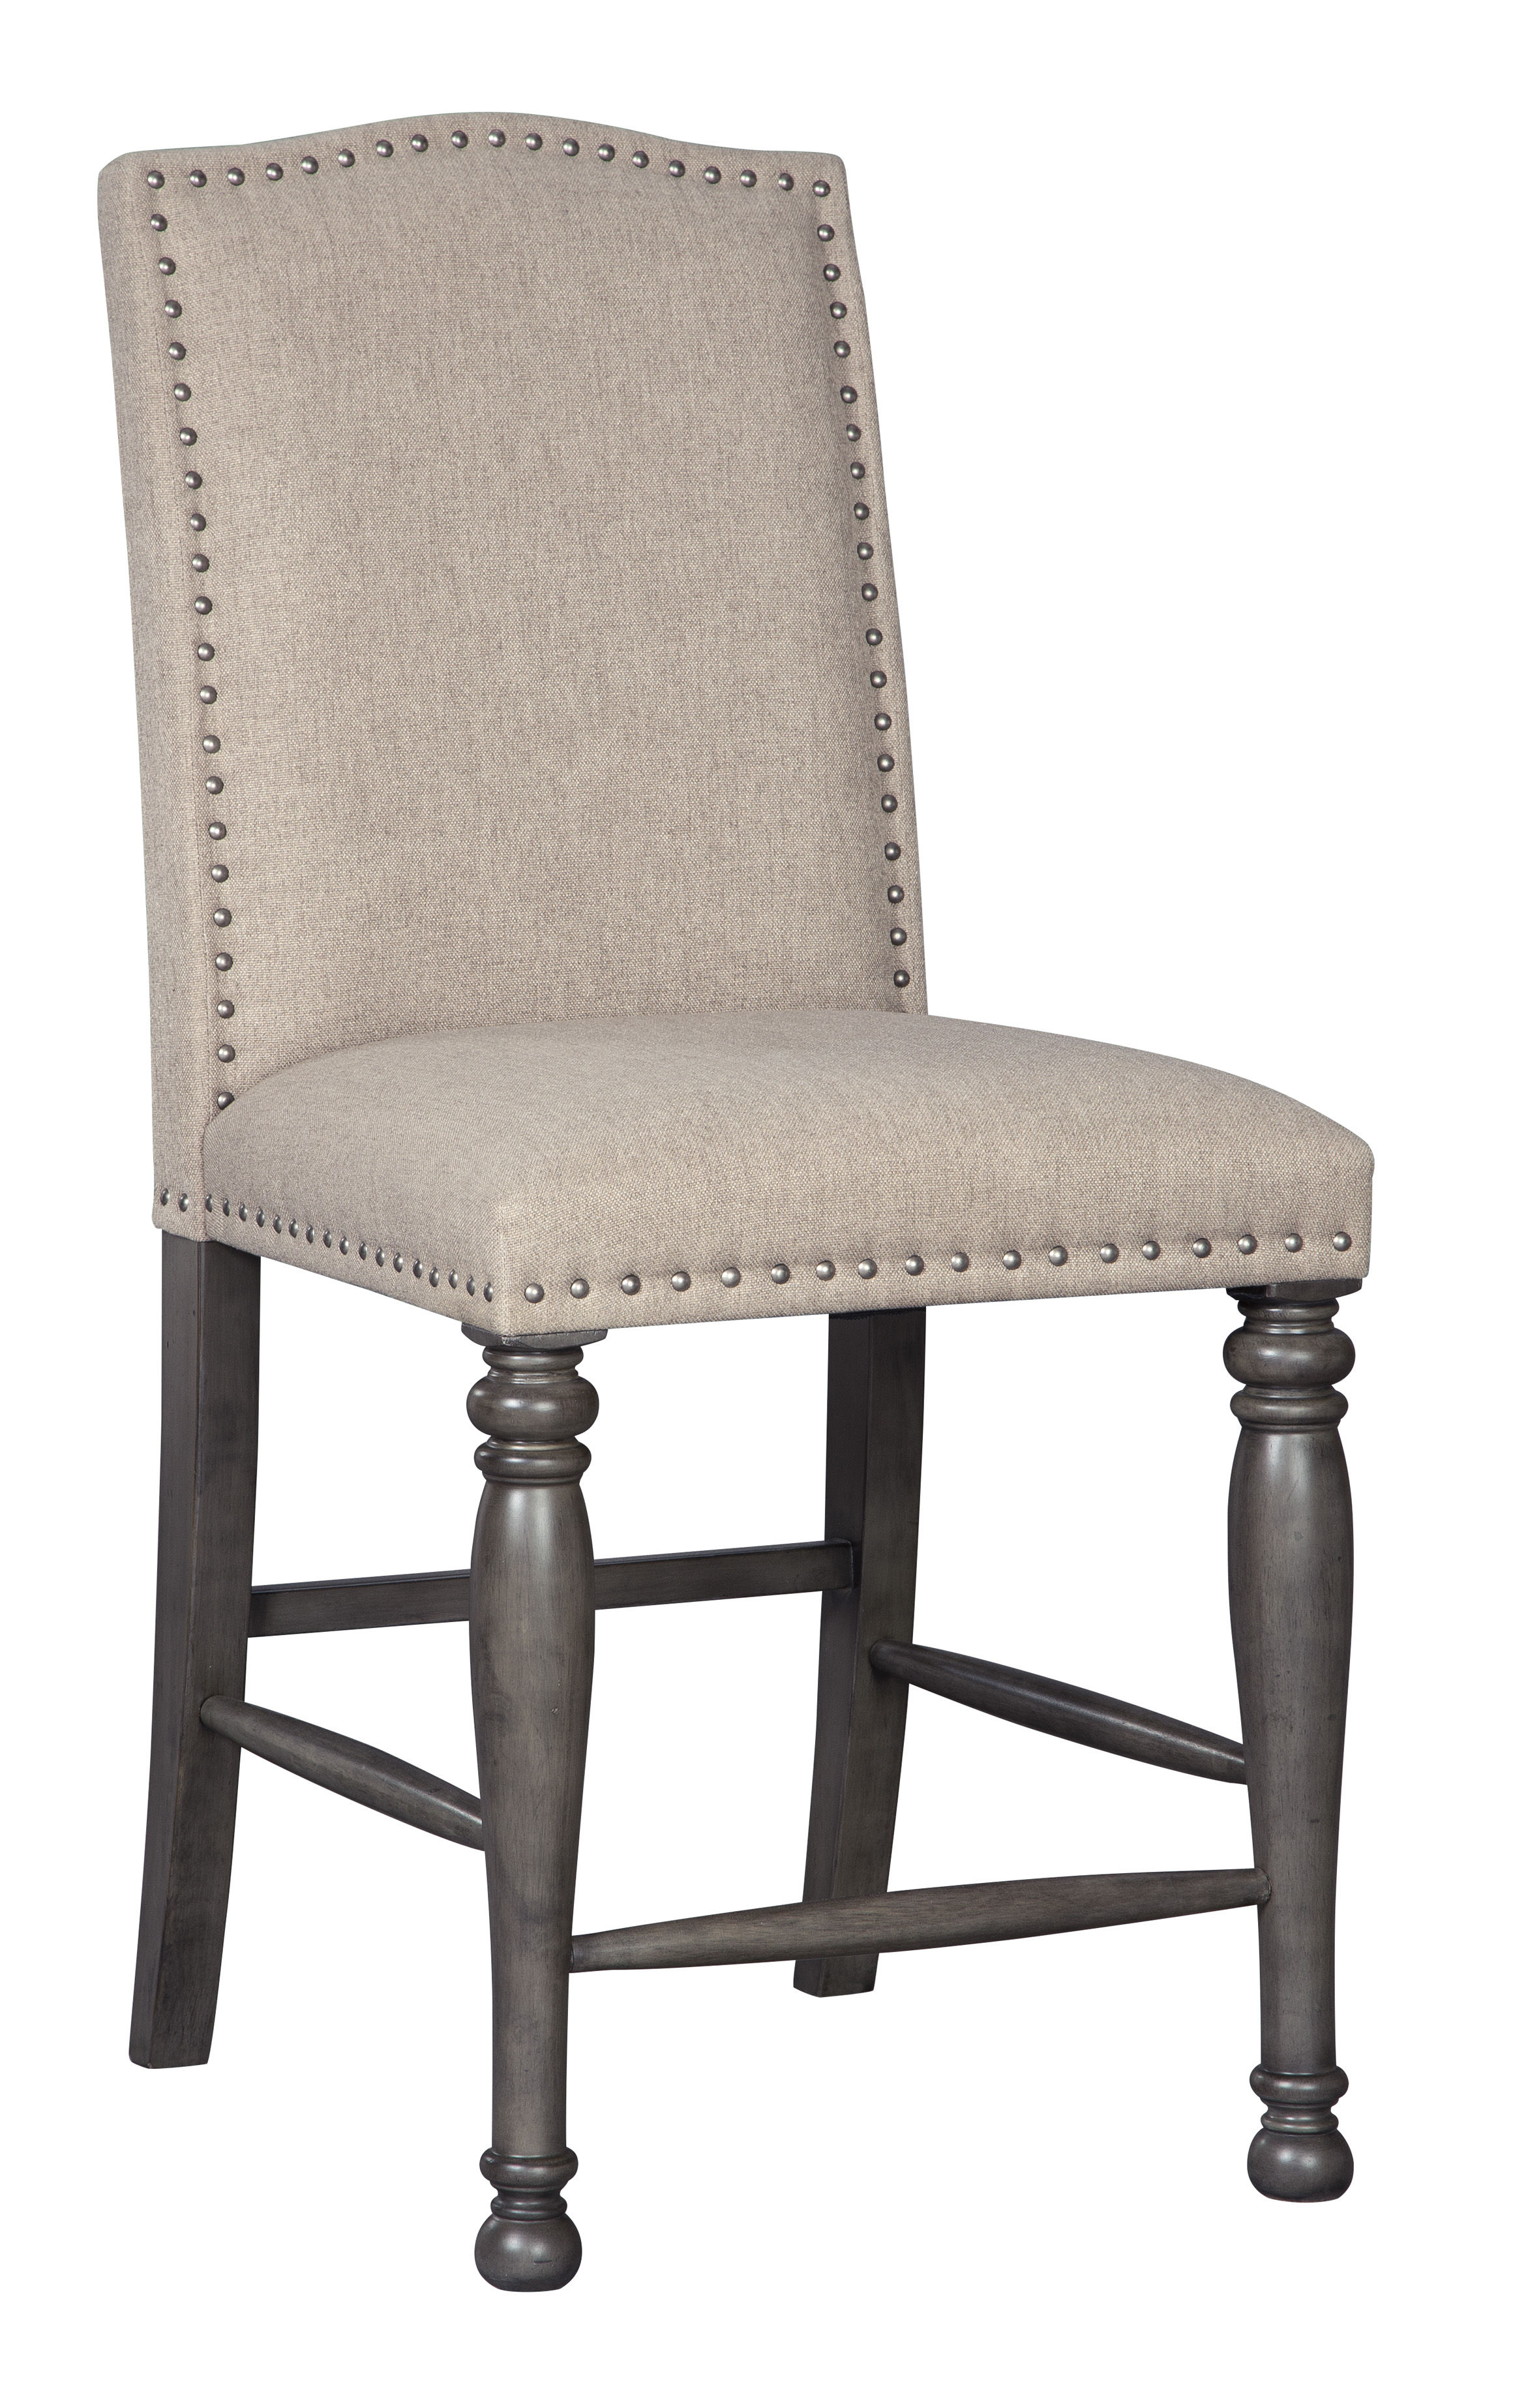 2 Ashley Furniture Audberry Dark Gray Upholstered Bar Stools The